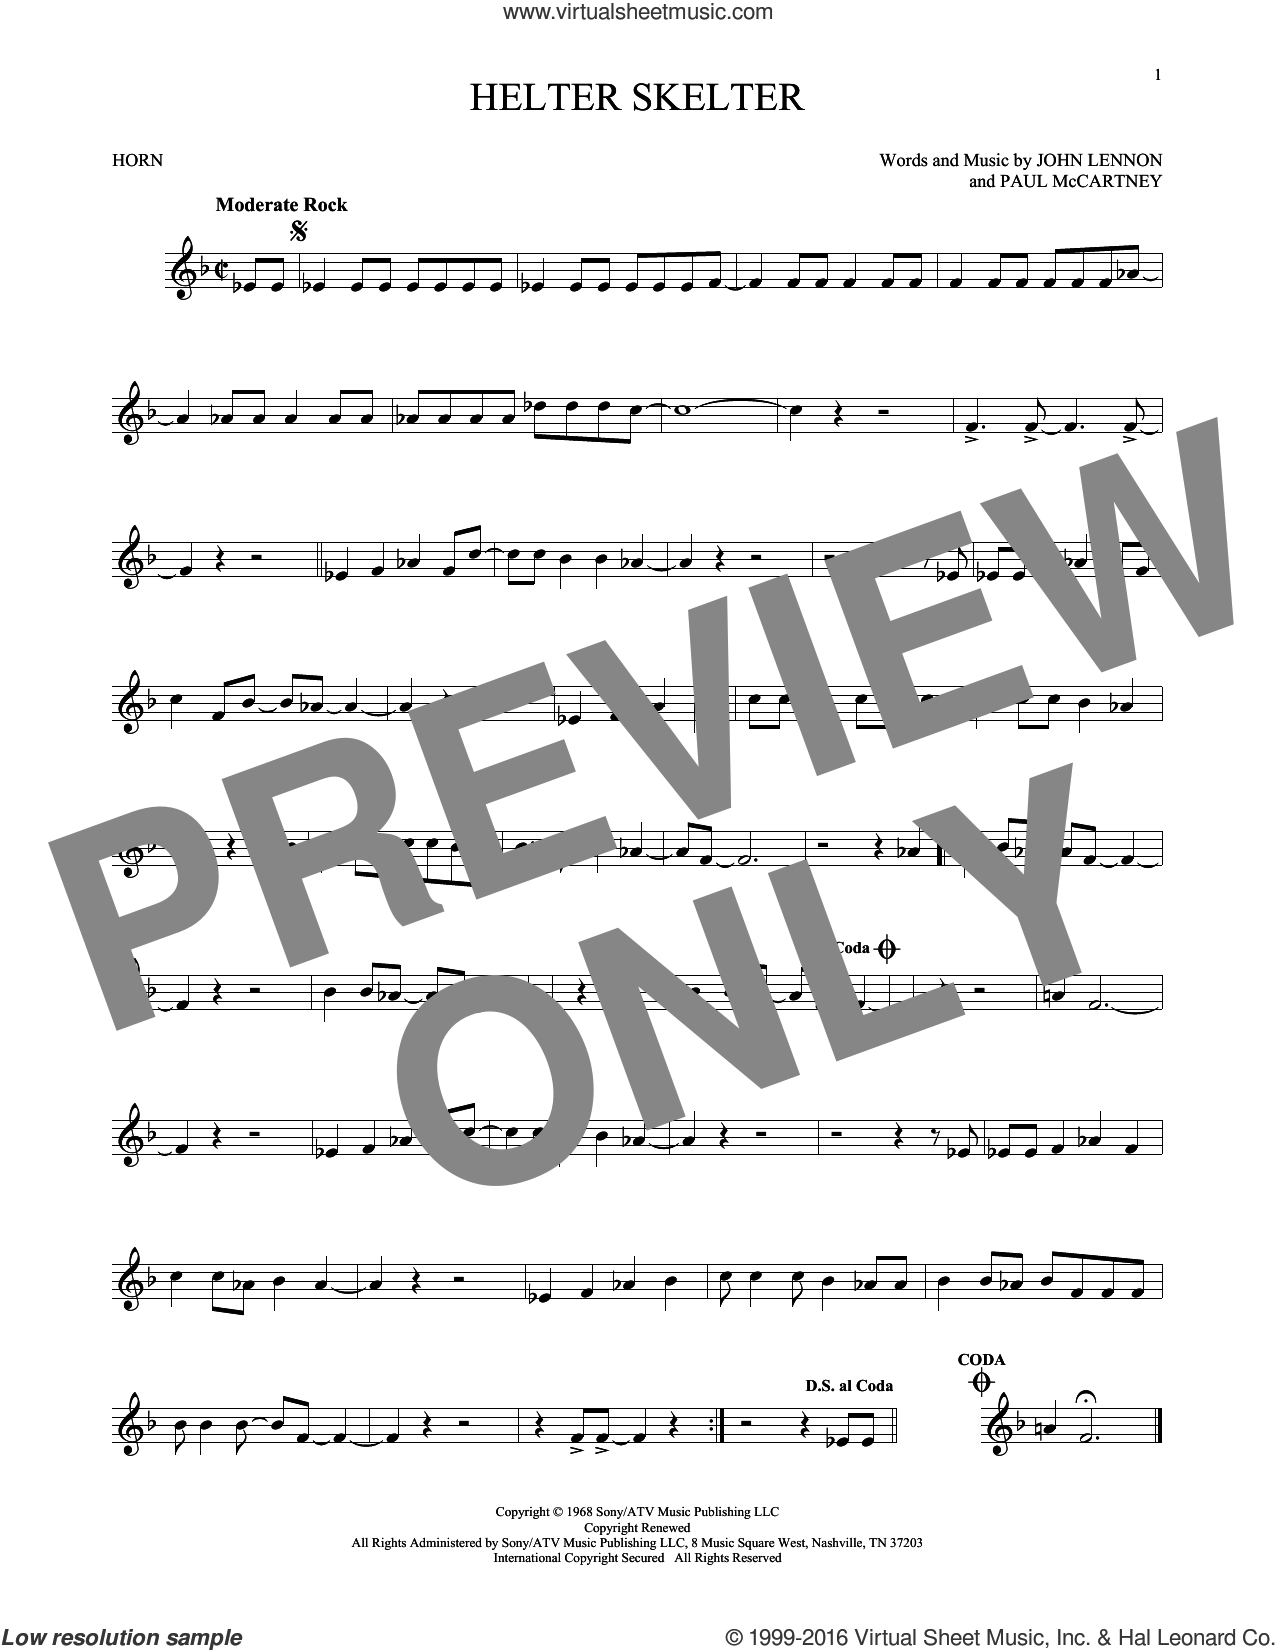 Helter Skelter sheet music for horn solo by The Beatles, John Lennon and Paul McCartney, intermediate skill level